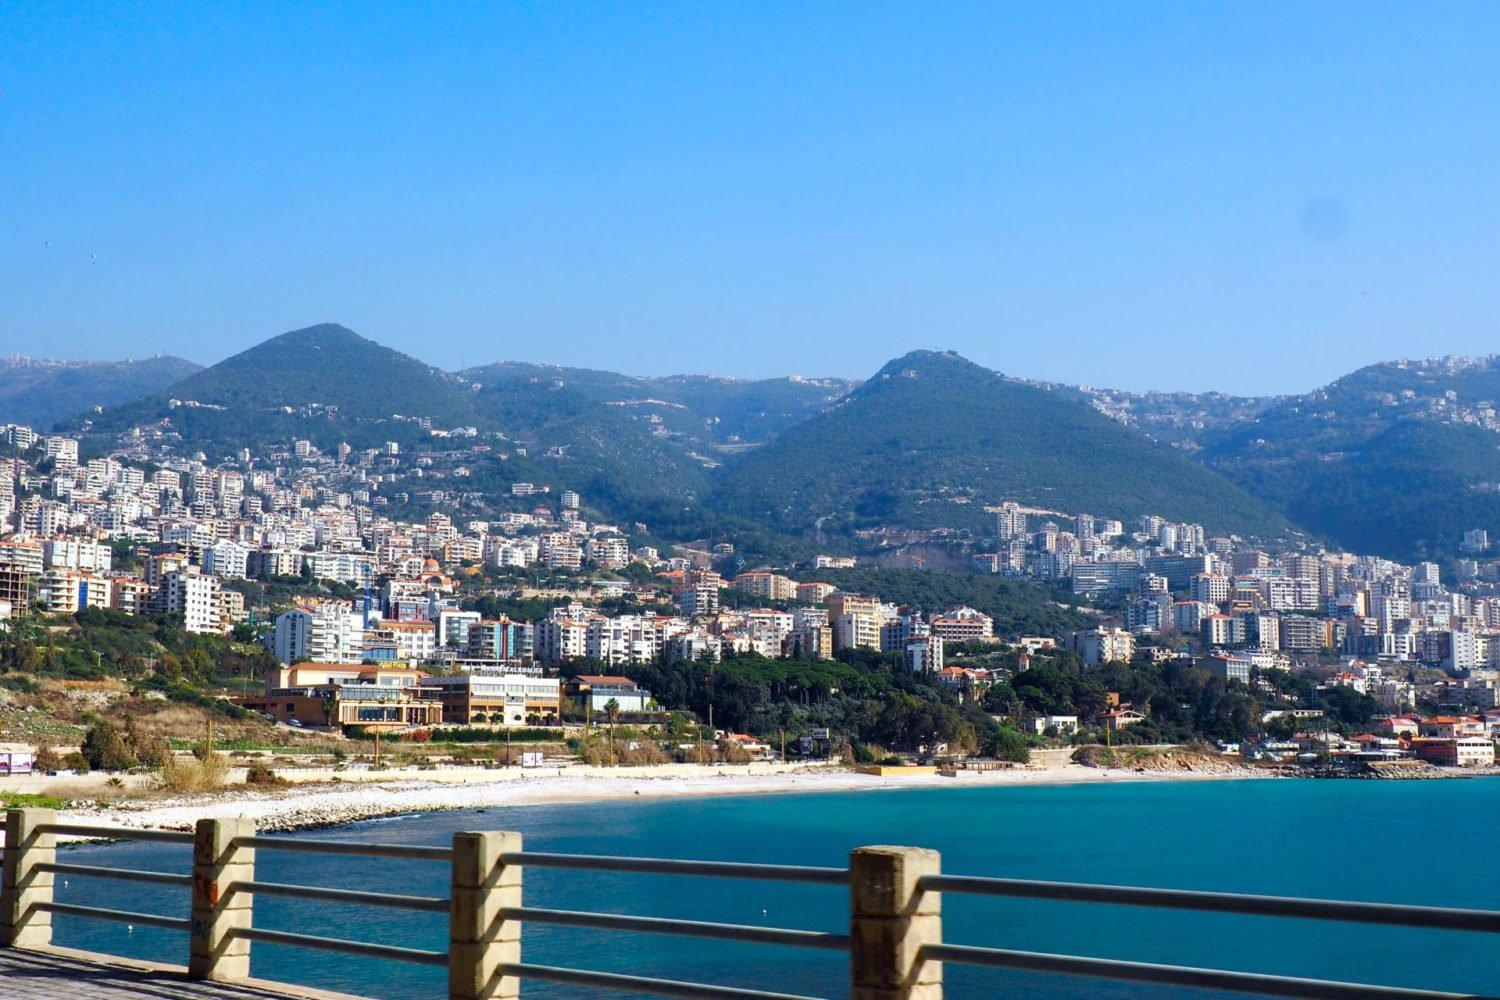 Two days in Lebanon: coastal views during bus travel